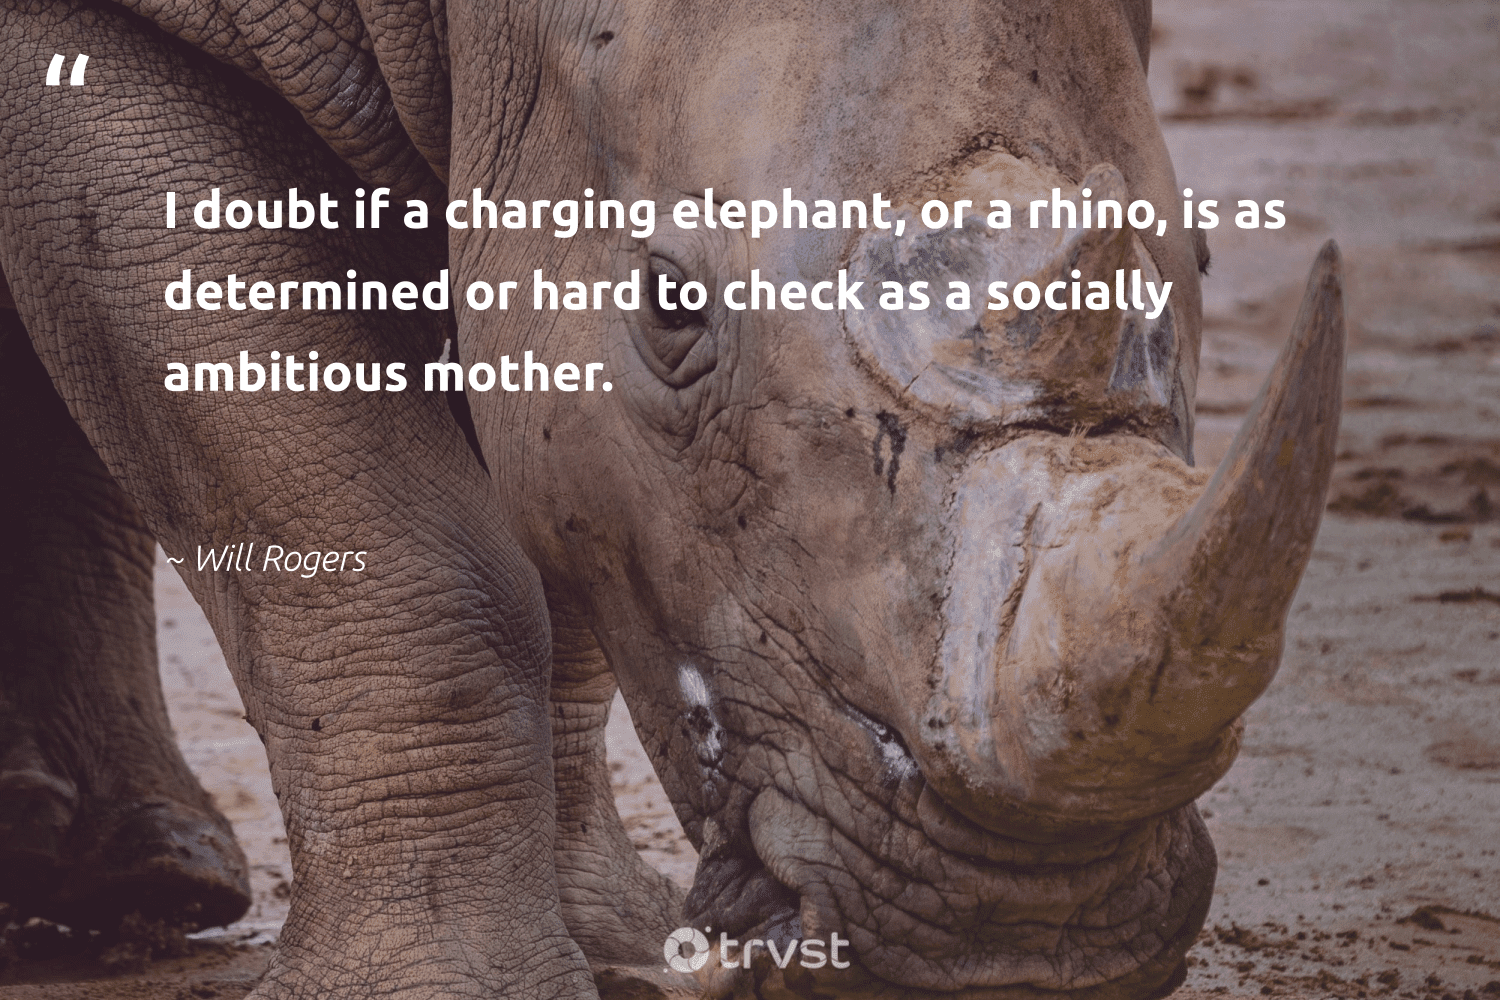 """""""I doubt if a charging elephant, or a rhino, is as determined or hard to check as a socially ambitious mother.""""  - Will Rogers #trvst #quotes #rhino #amazingworld #bethechange #conservation #planetearthfirst #wildlifeprotection #dogood #majesticwildlife #dosomething #animalphotography"""